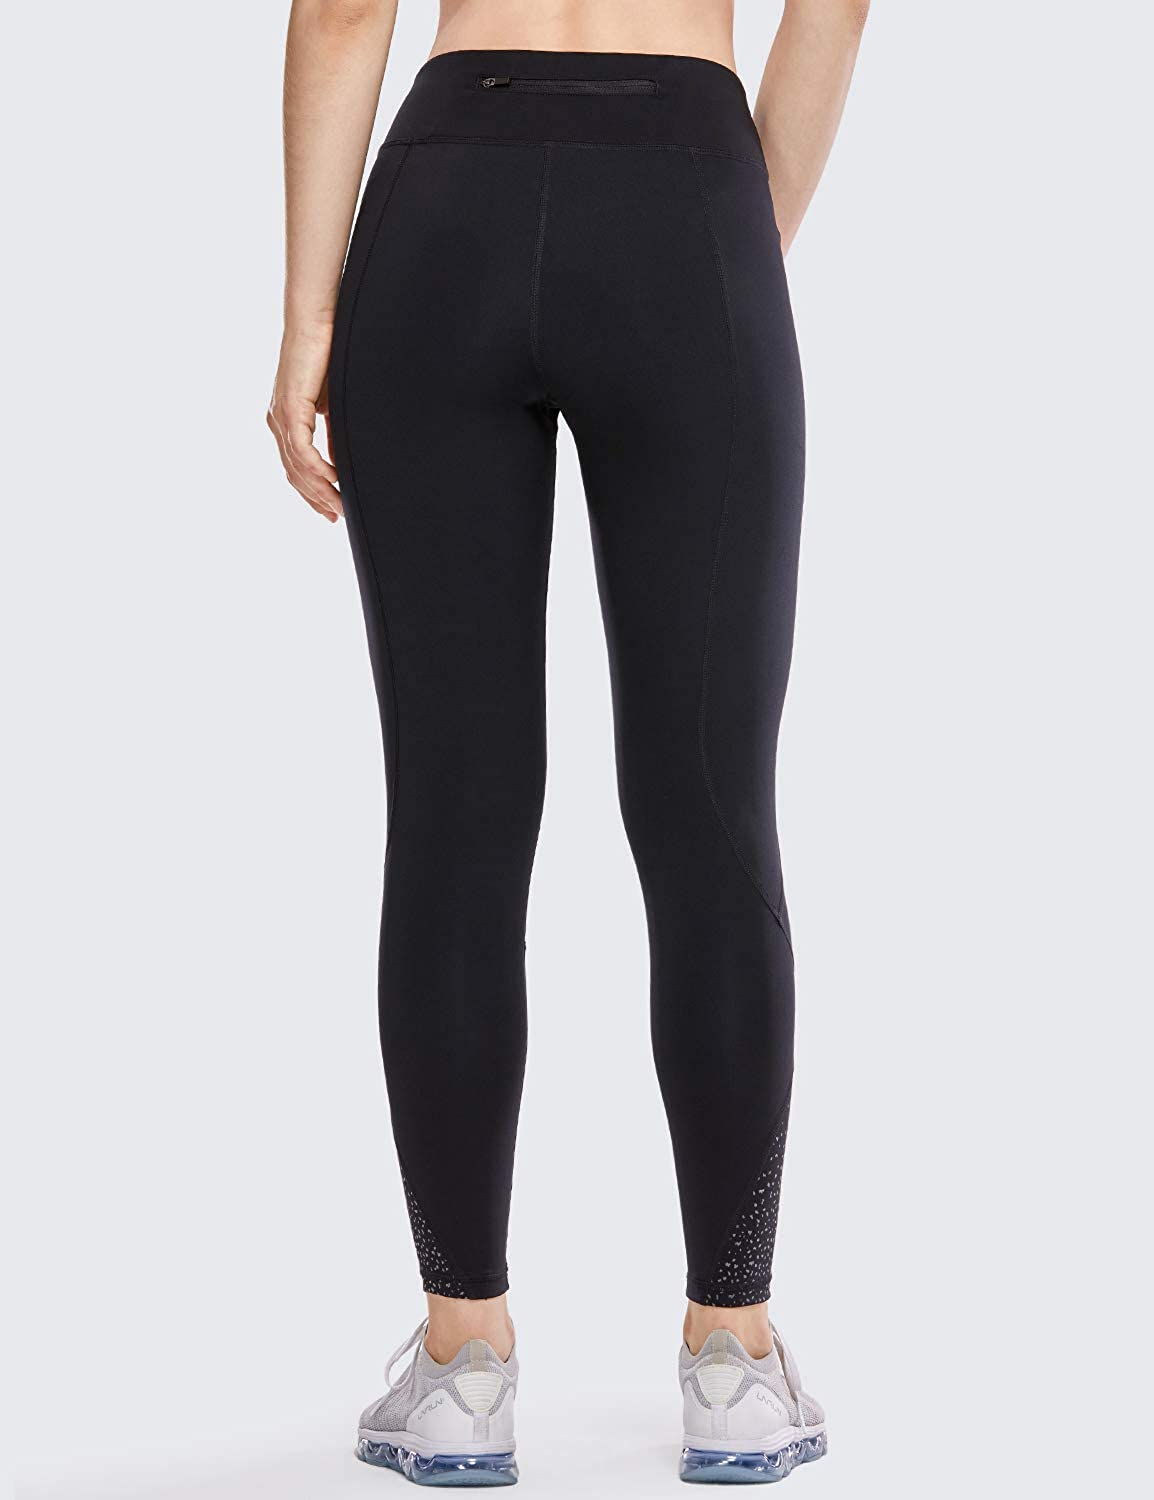 CRZ YOGA Non See-Through Mid Rise Athletic Compression Leggings Women 7//8 Length Hugged Feeling Workout Tights-25 Inches